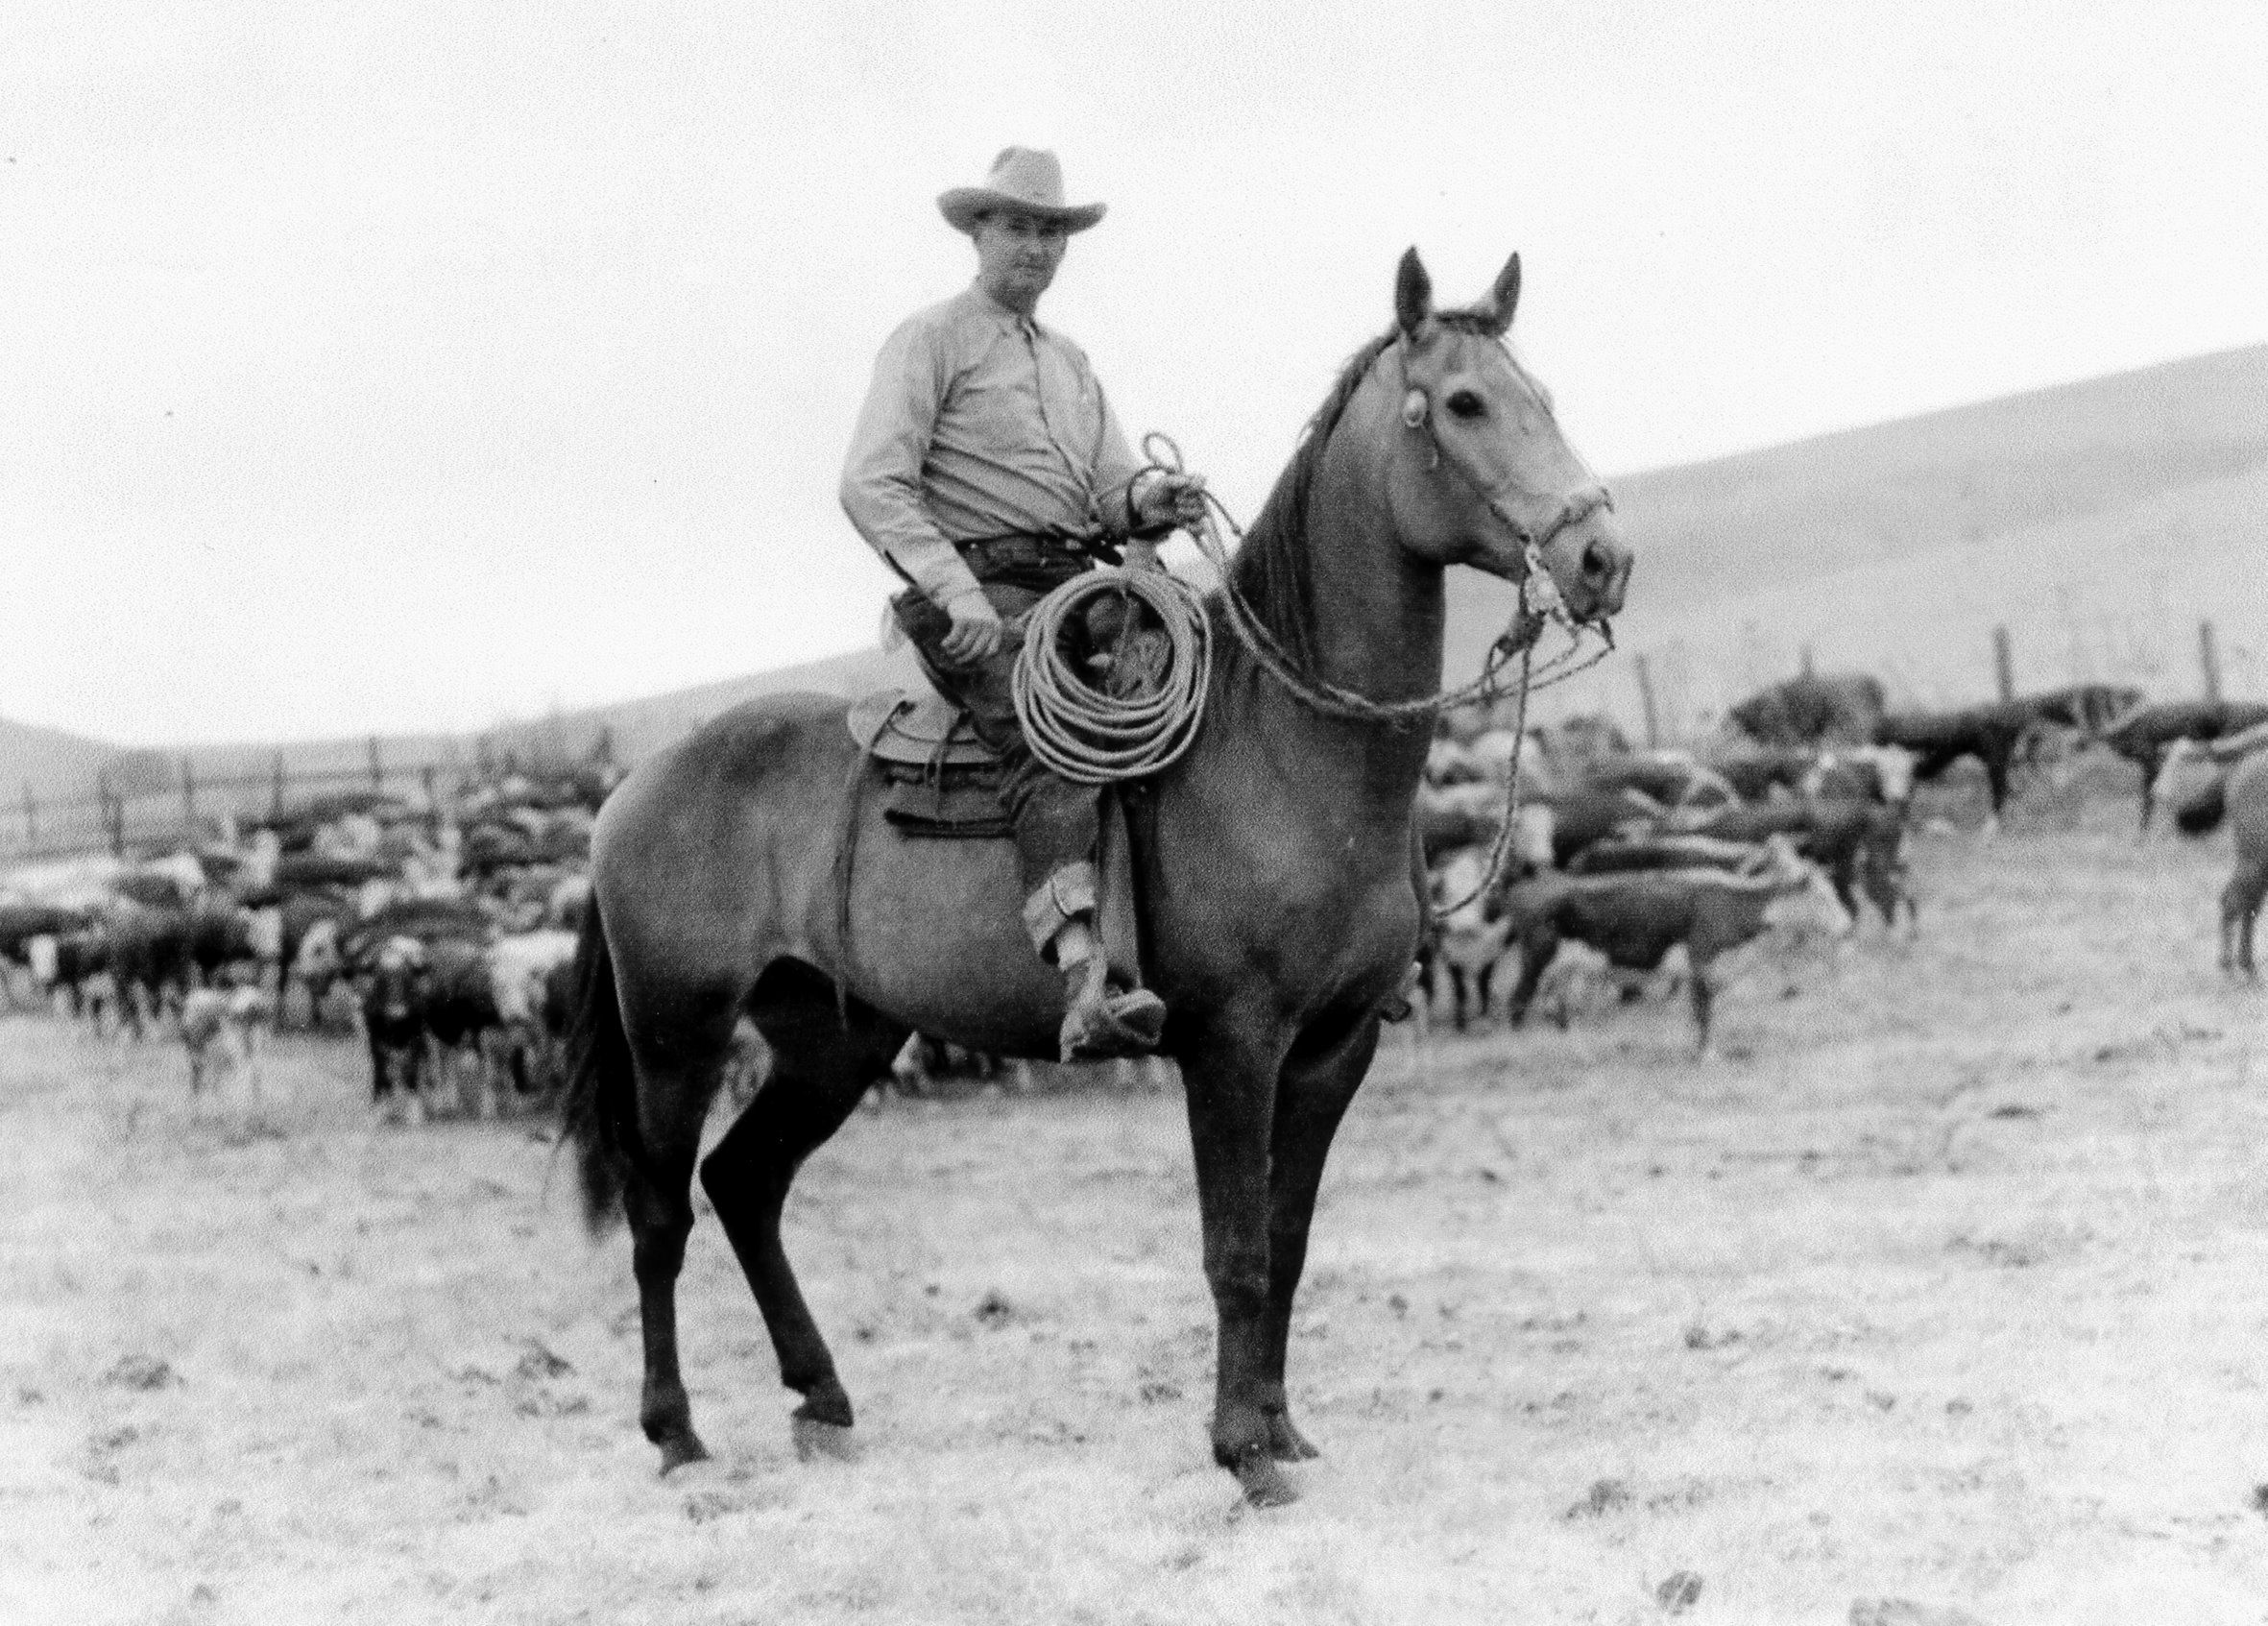 cowboys and cattlemen Both cowboys and cattlemen were influenced by this context, but cattlemen looked outside the ranch for af- firmation of their manhood, while cowboys looked mainly to each other.